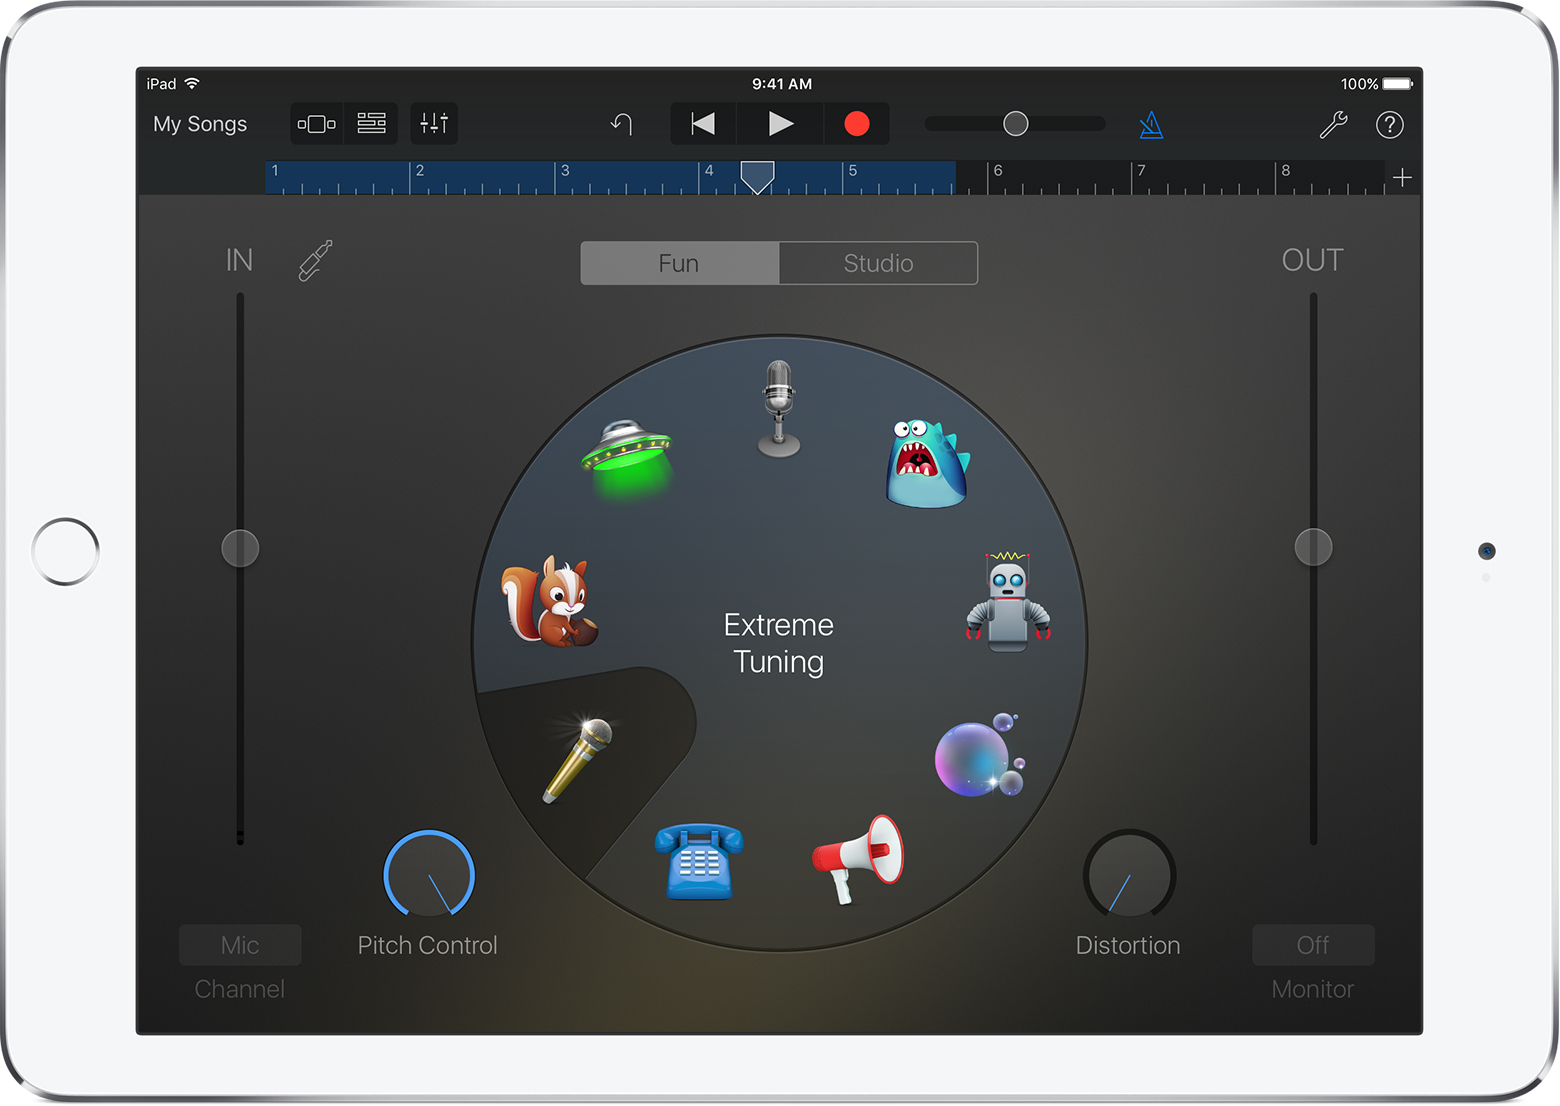 Use Extreme Tuning in GarageBand for iOS - Apple Support